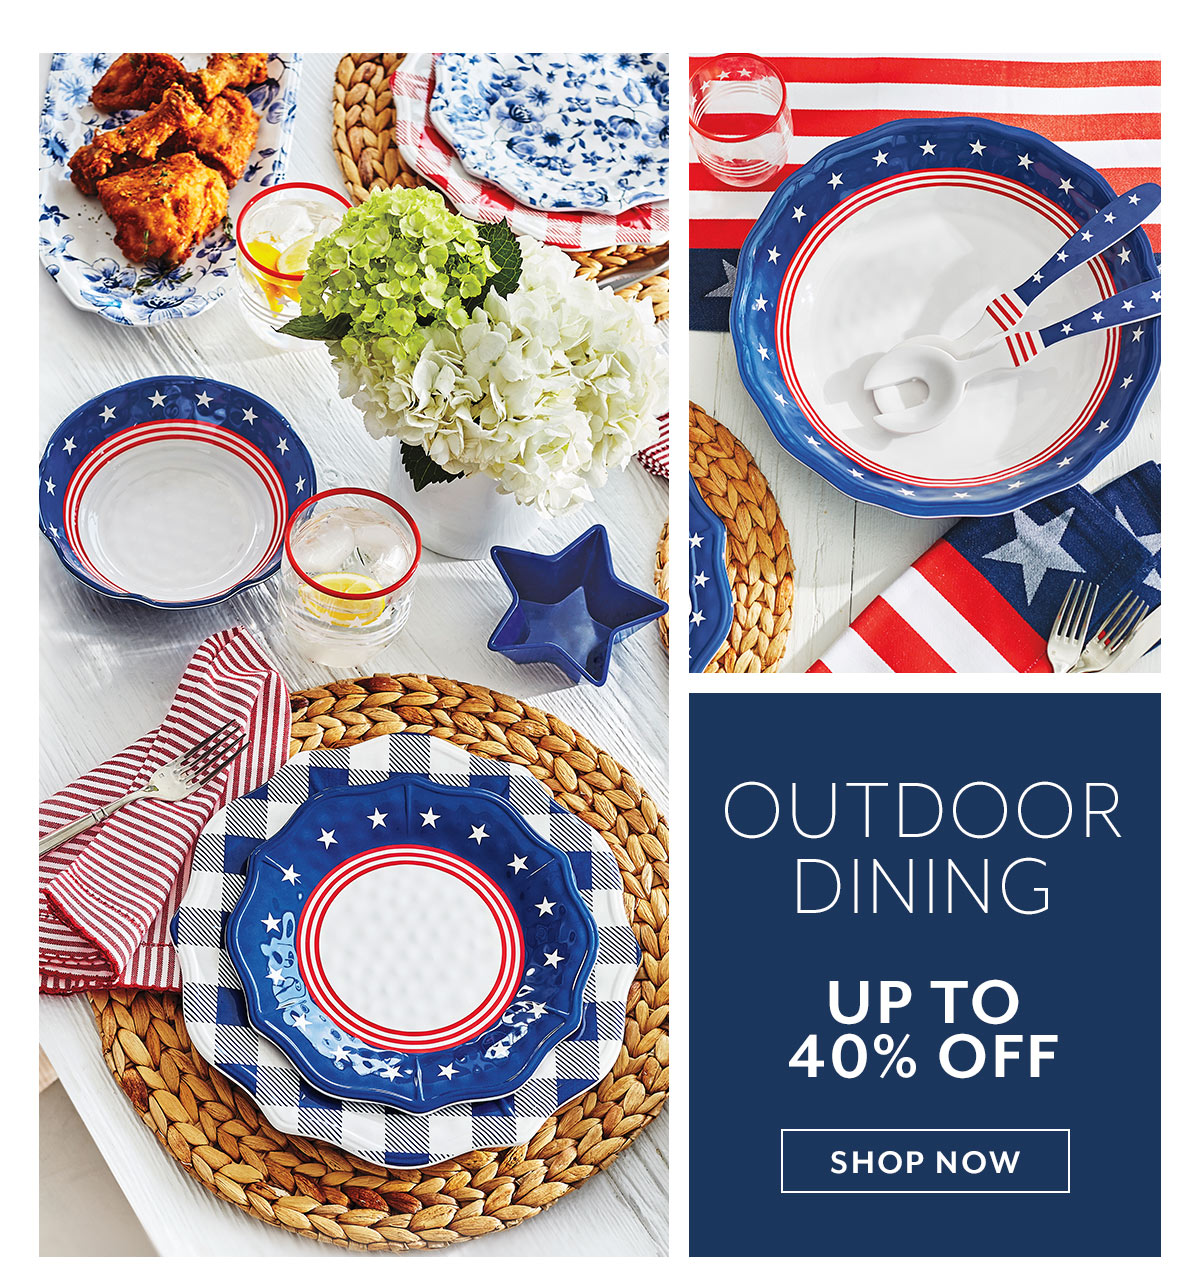 Outdoor Dining up to 40% off